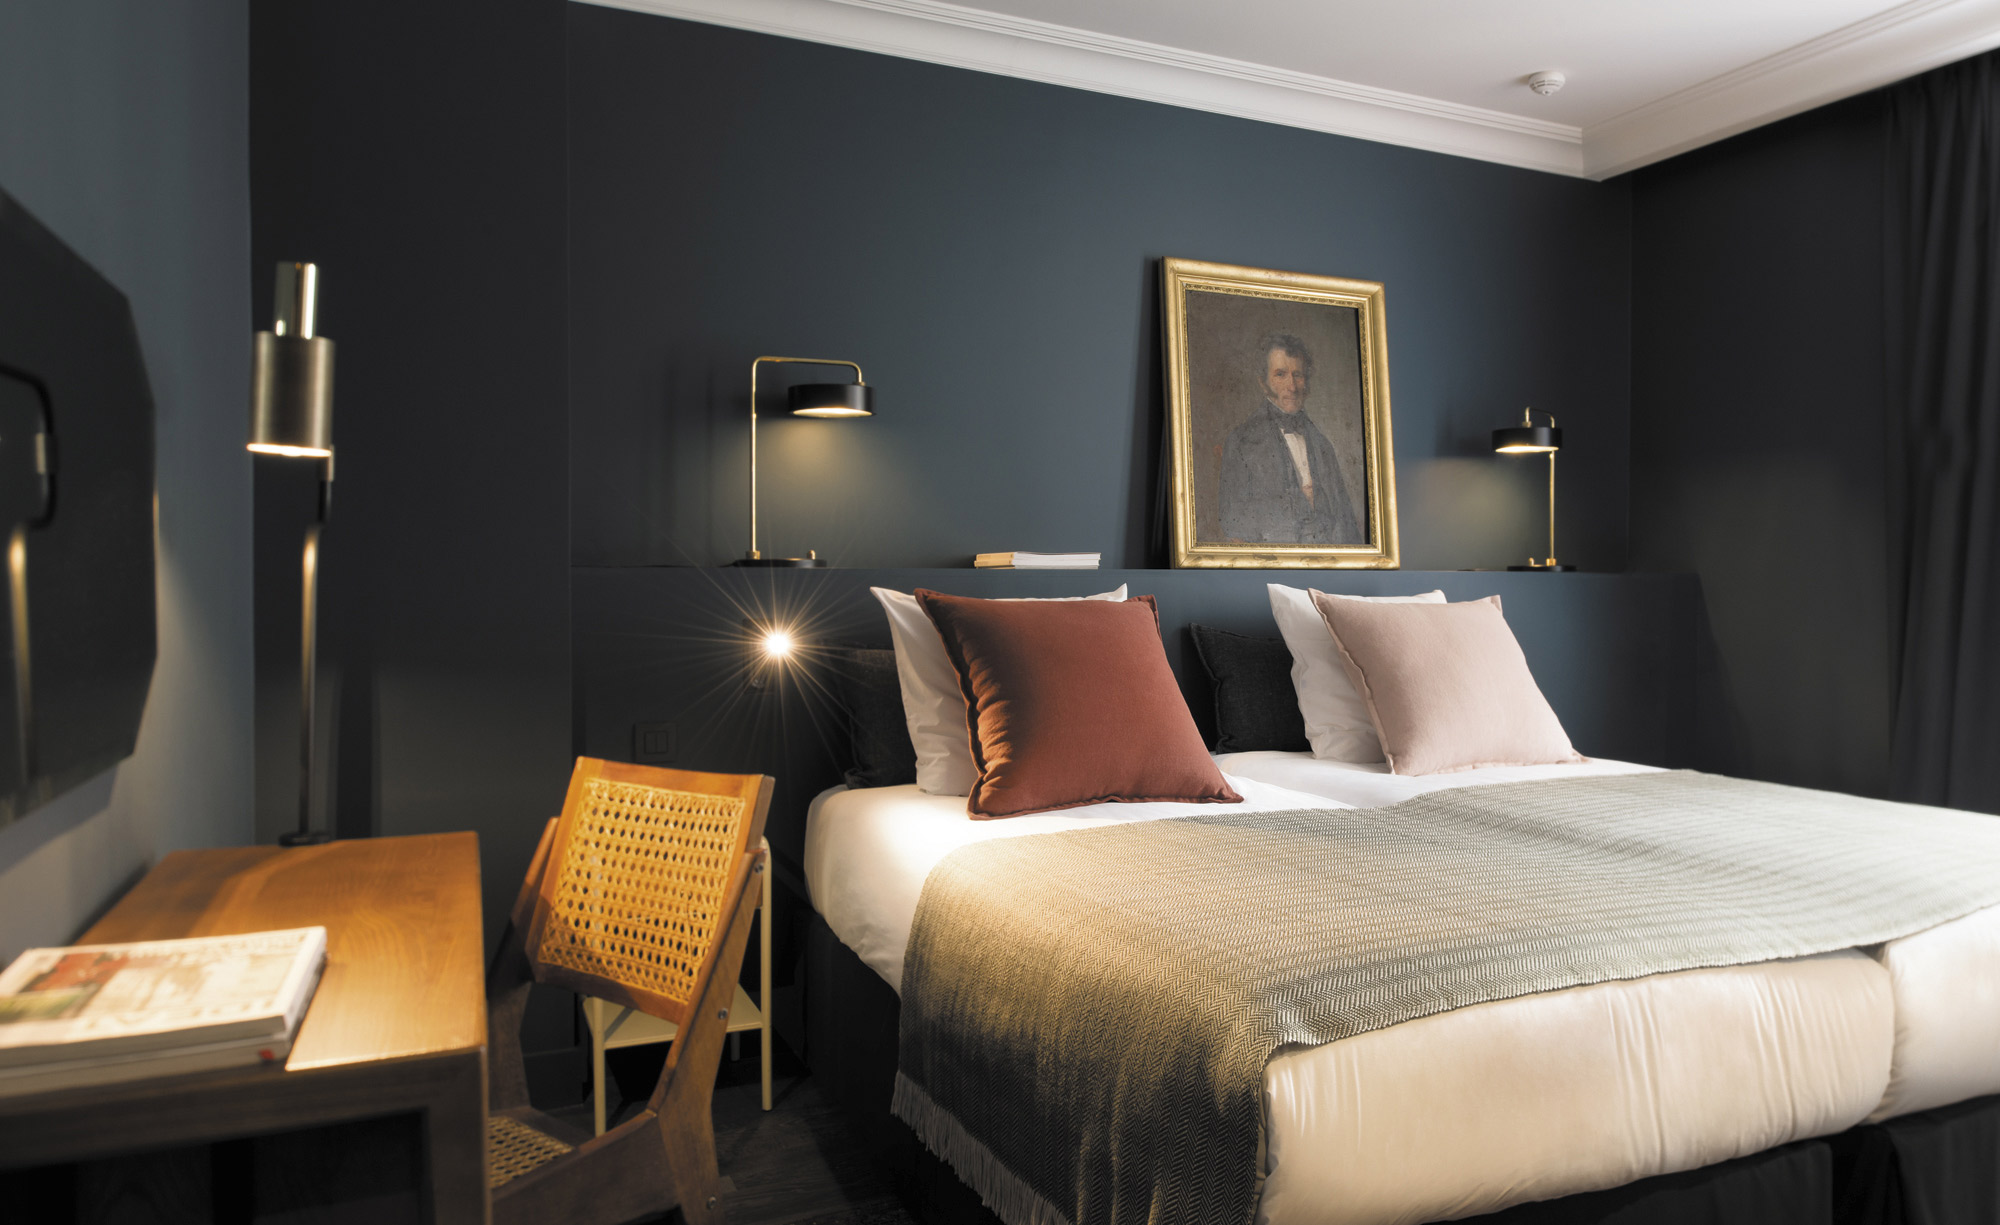 c o q hotel review paris france wallpaper. Black Bedroom Furniture Sets. Home Design Ideas